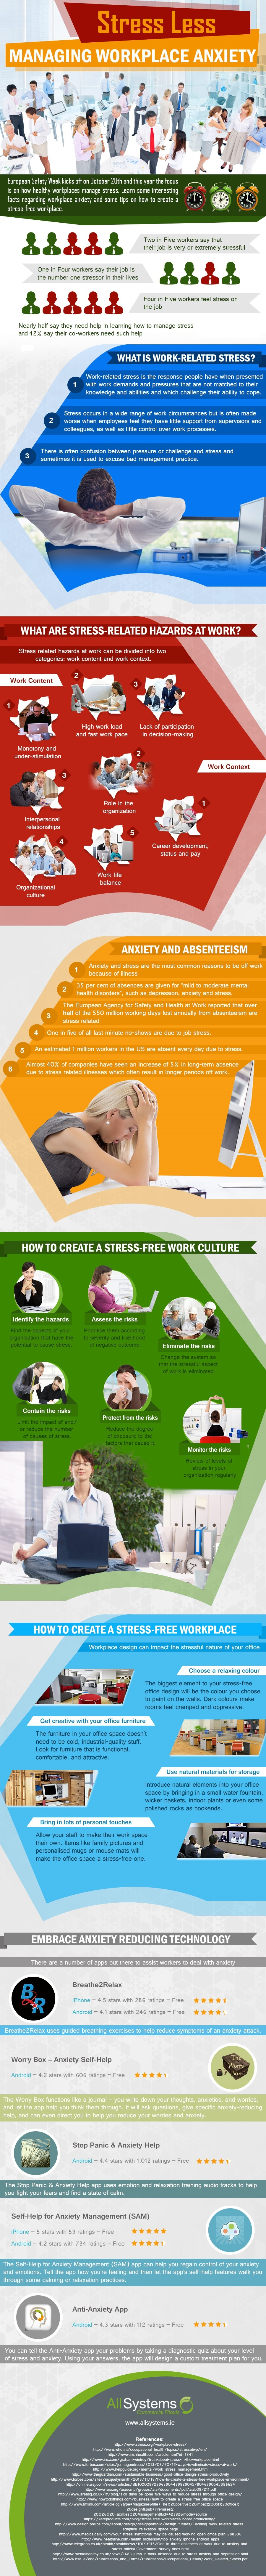 All_systems_-_IG_Sept-_Stress_in_the_Workplace (1)